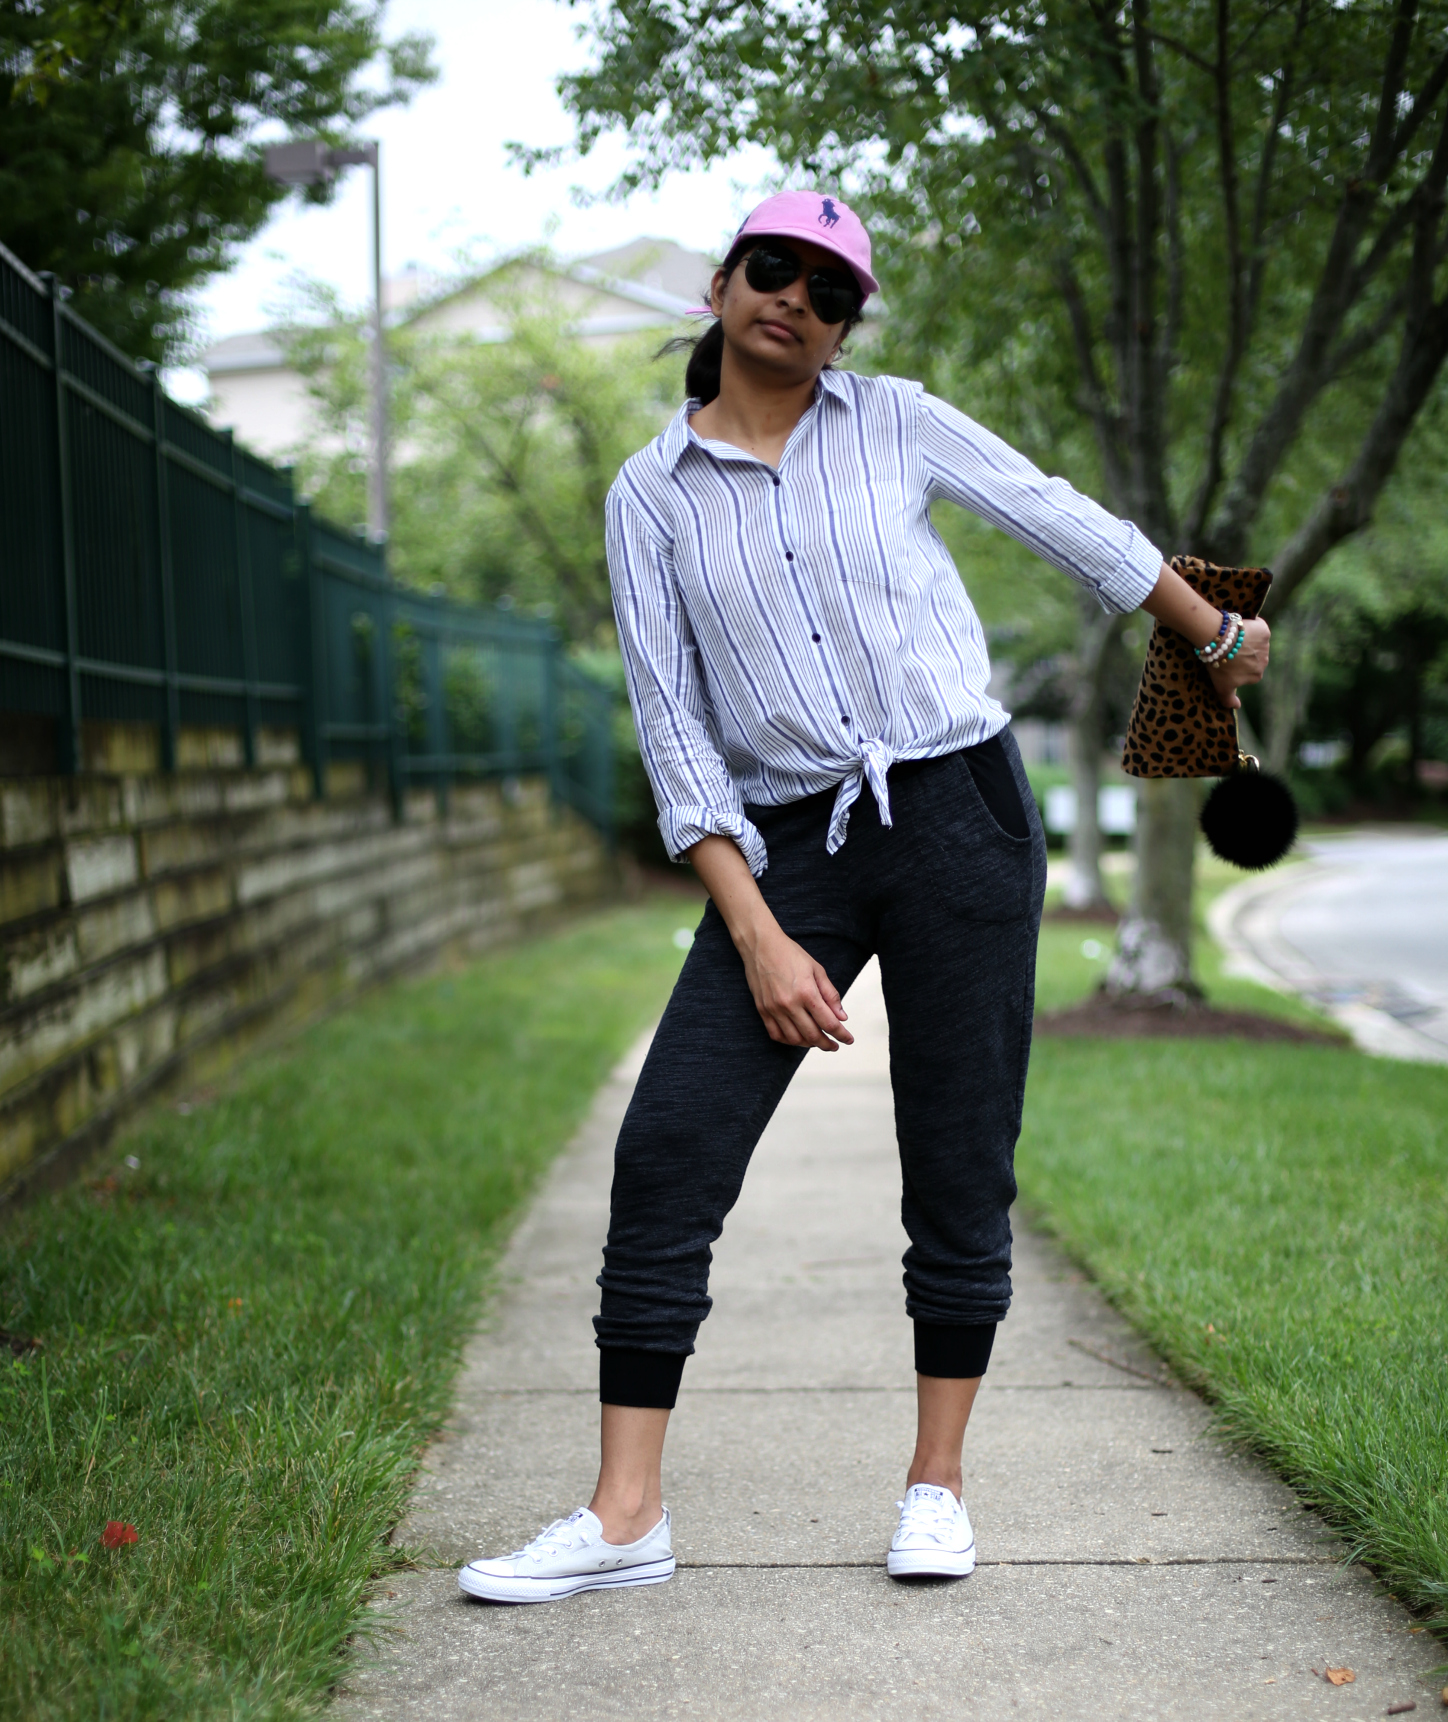 trending-now-athleisure-style